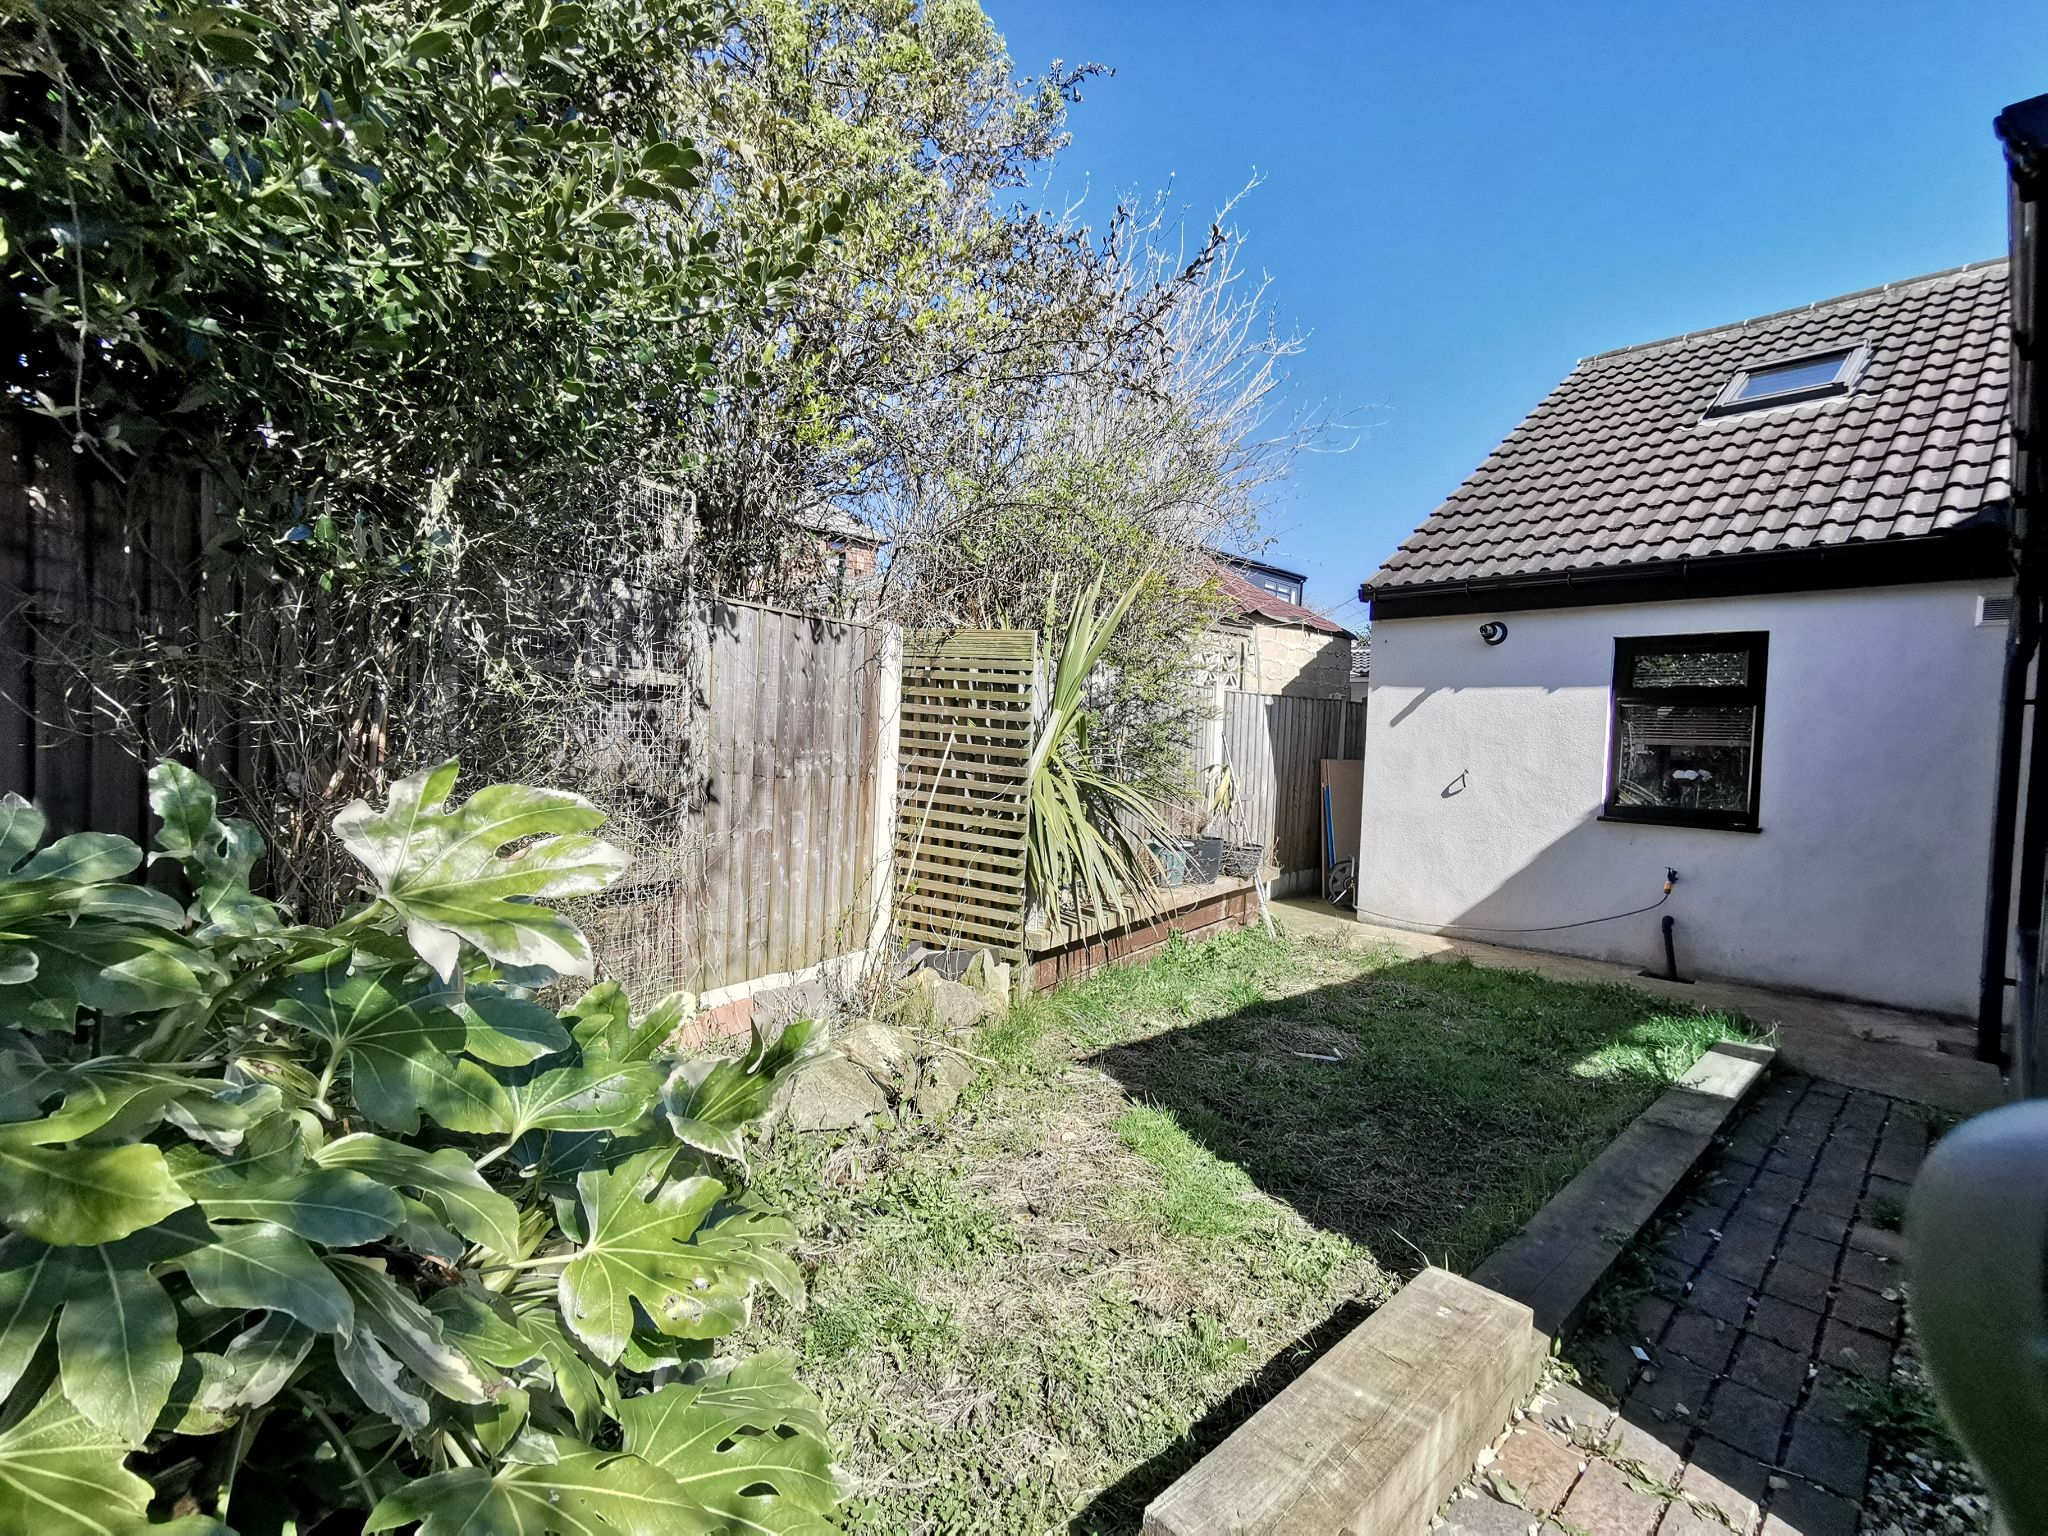 6 bedroom detached bungalow For Sale in Bradford - Photograph 8.